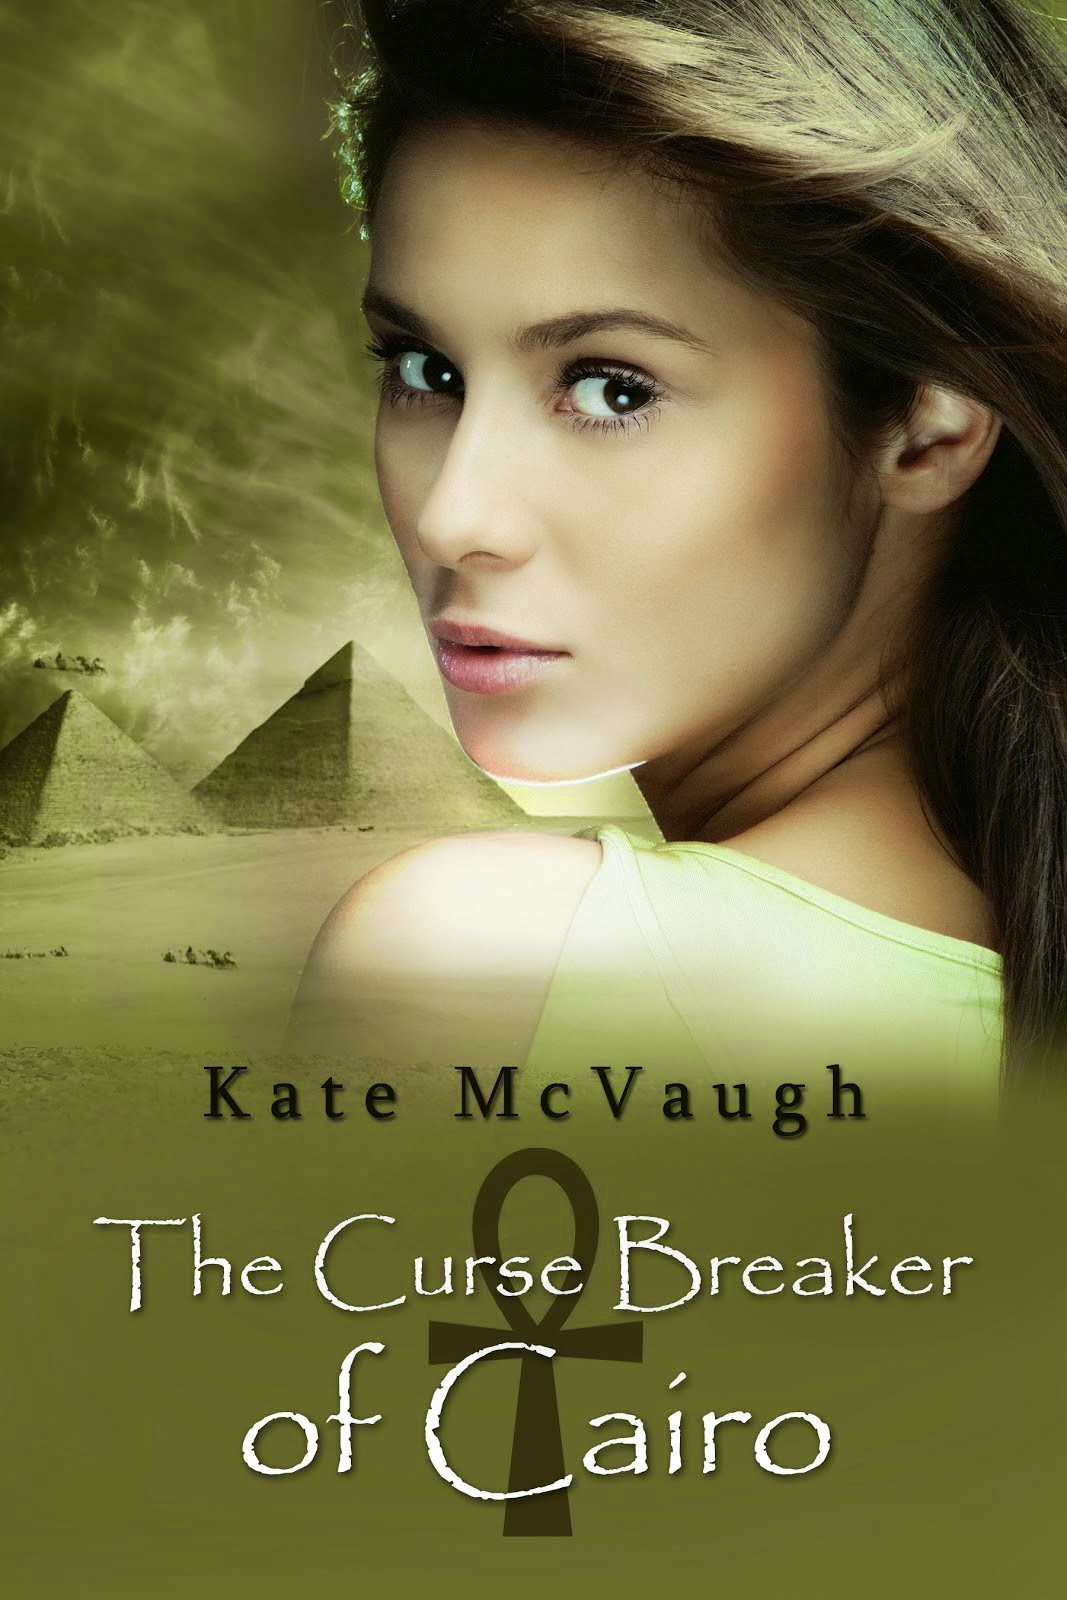 The Curse Breaker of Cairo